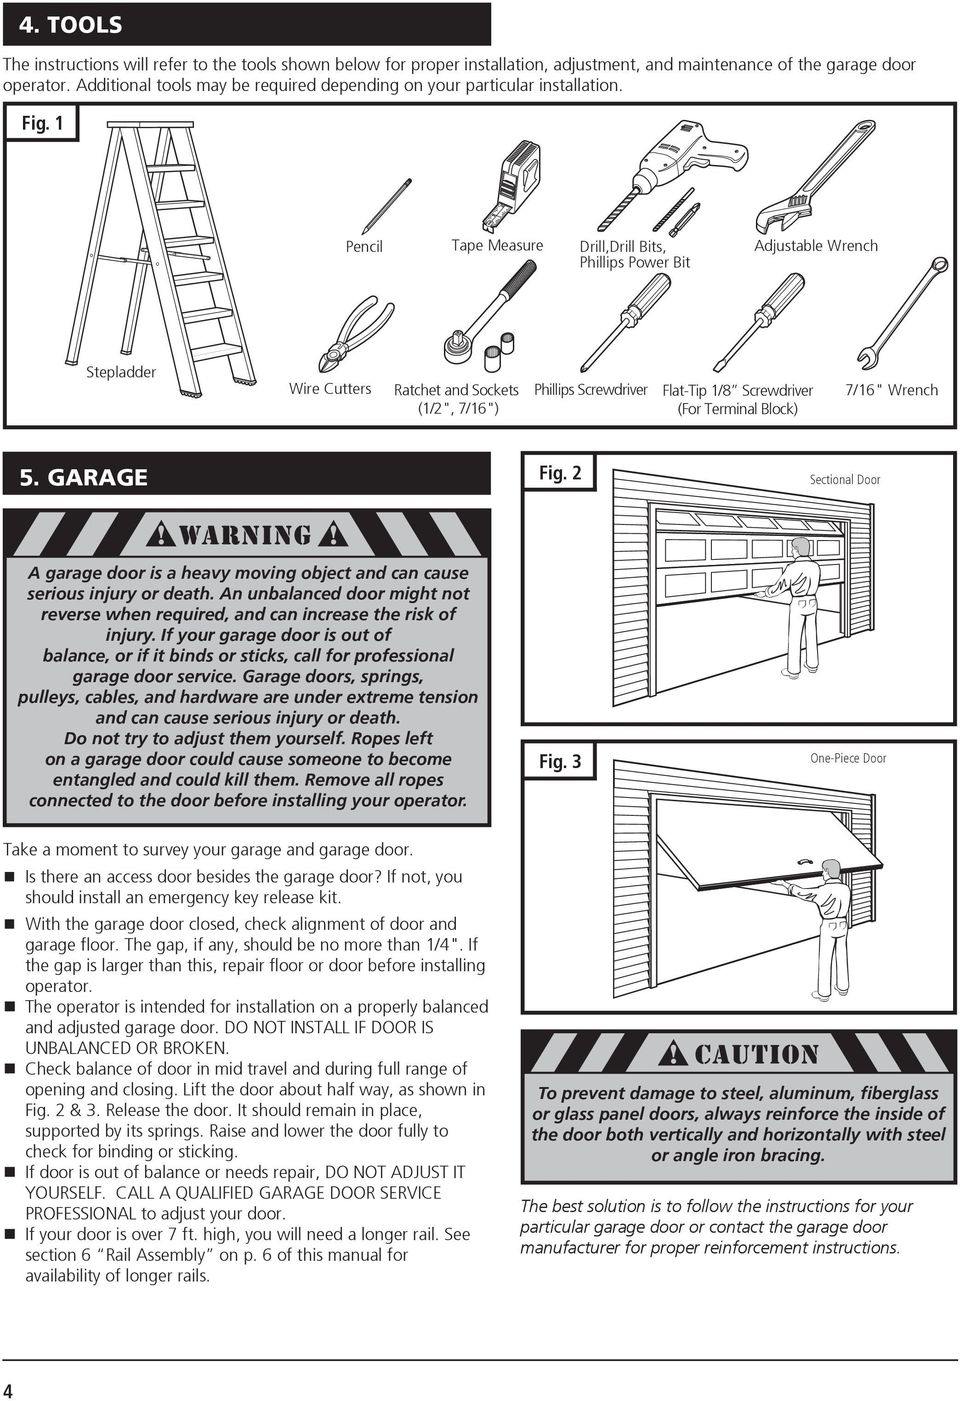 M55 Residential Garage Door Operator Pdf Safety Sensor Wiring Diagram Download Page 1 Pencil Tape Measure Drilldrill Bits Phillips Power Bit Adjustable Wrench Stepladder Wire